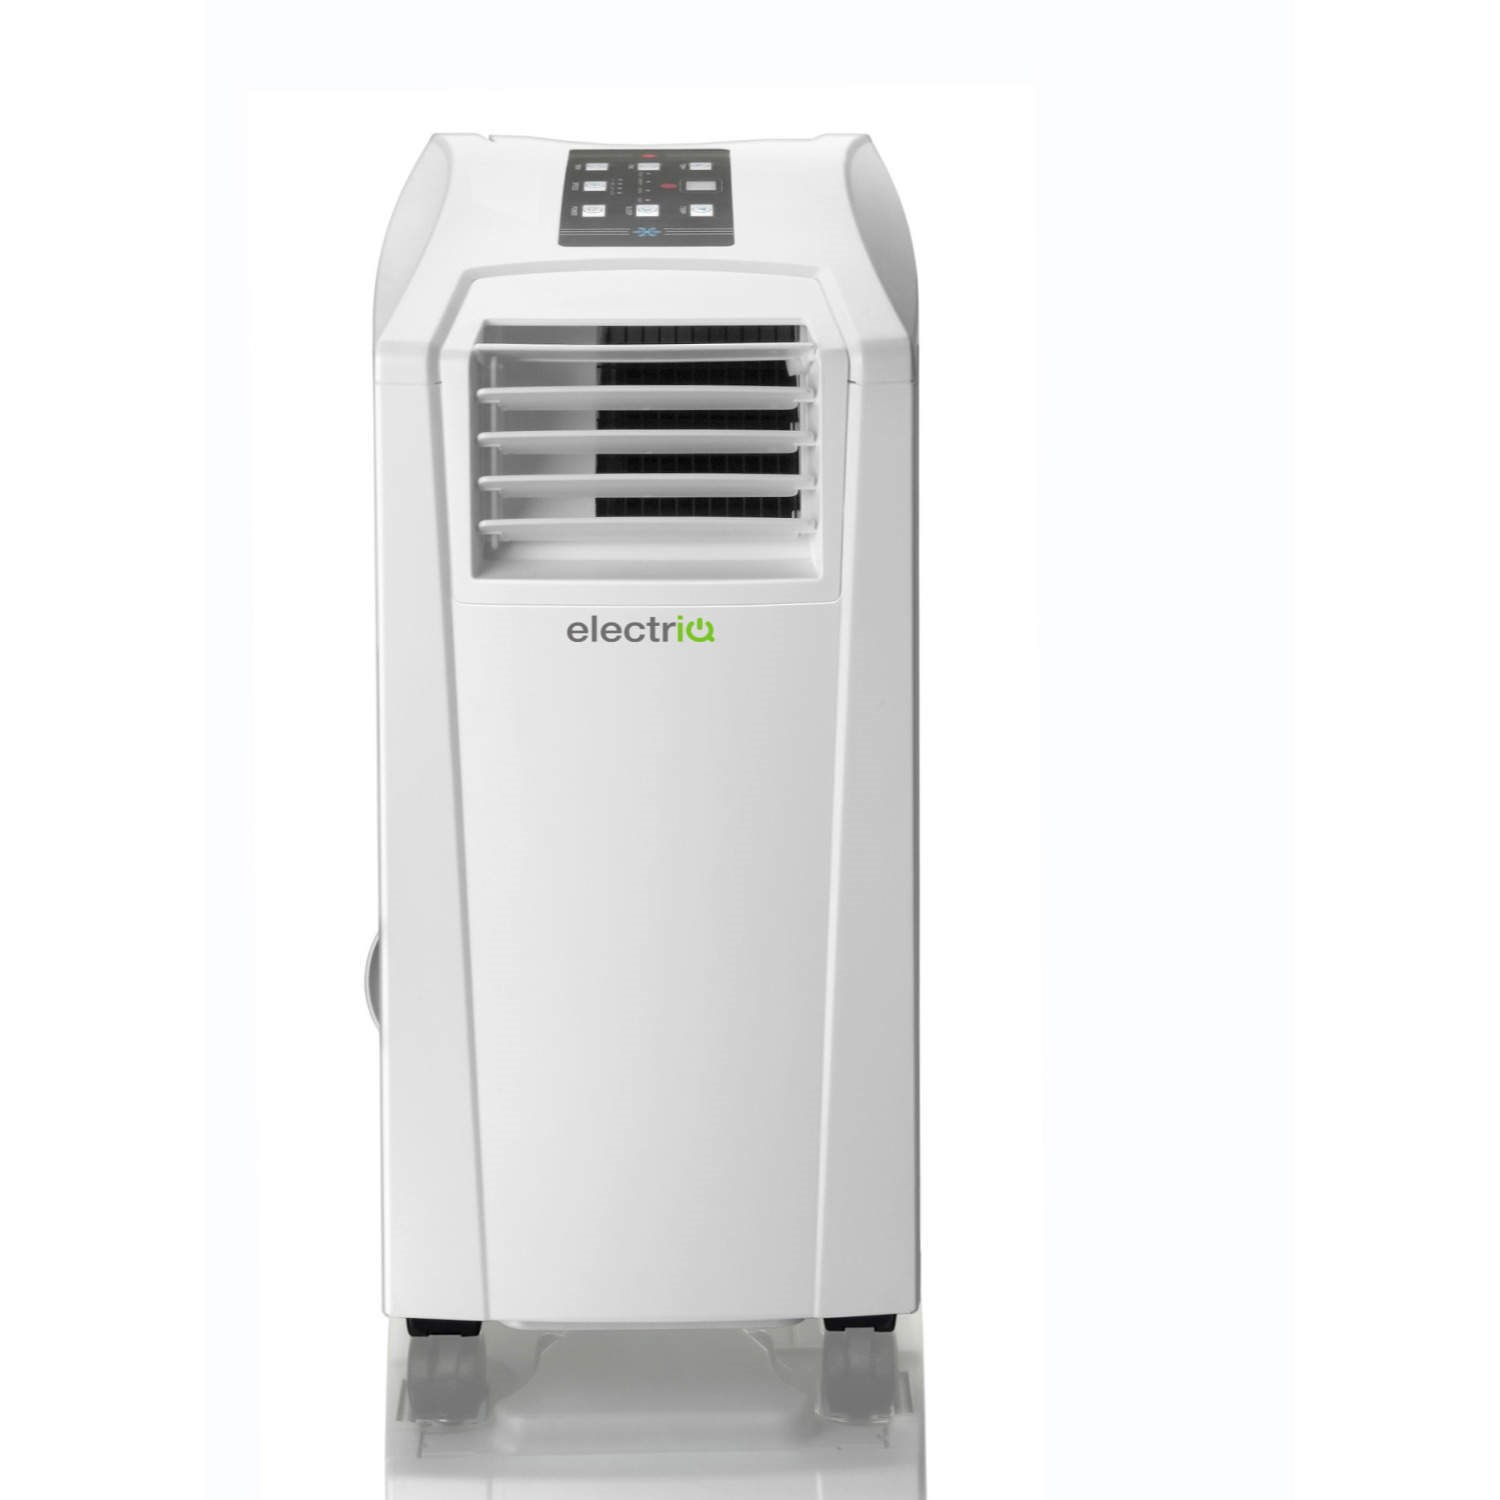 Portable Heat And Air Units : Btu portable air conditioner mobile conditioning